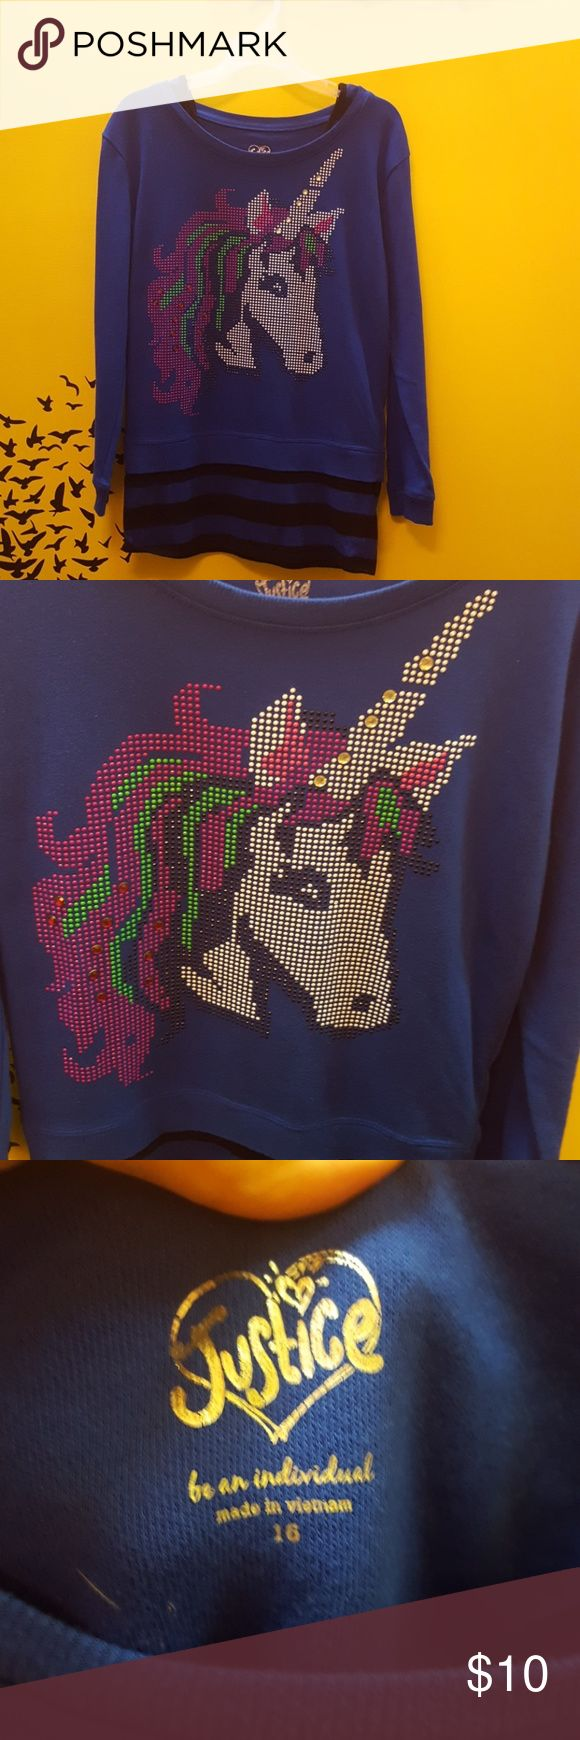 Create your own designs amp sell your design online shirts zazzle - Justice Horse Sweatshirt This Is Such A Cute Sweatshirt For A Little Girl A Cute Little Sequence Horse On It With Stripes At The Bottom But Go Great With